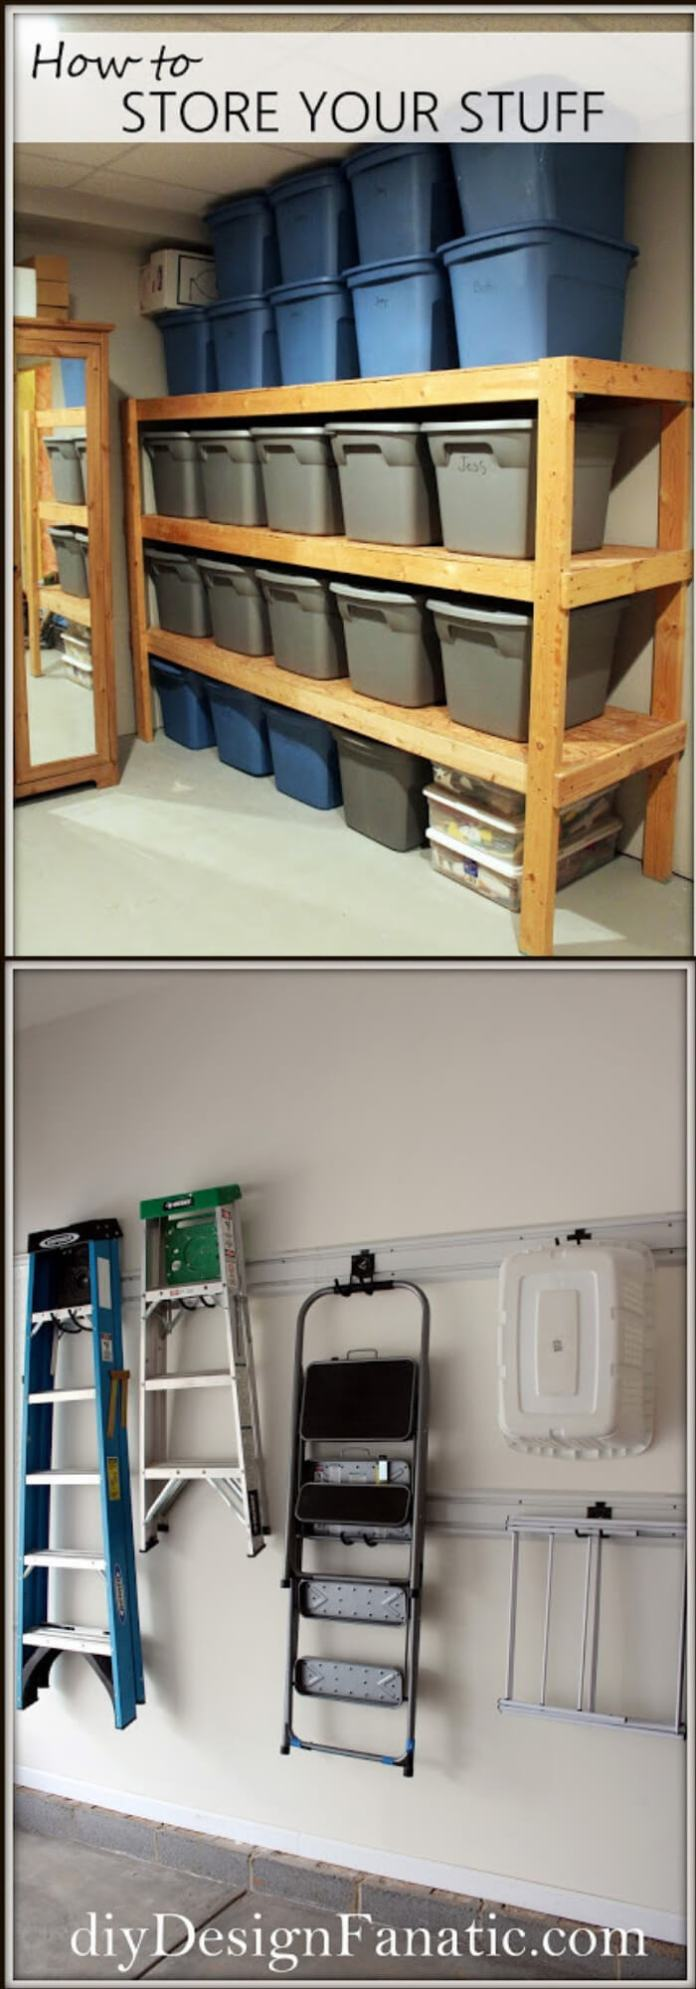 19 Best Diy Garage Storage Ideas For 2020 Farmfoodfamily